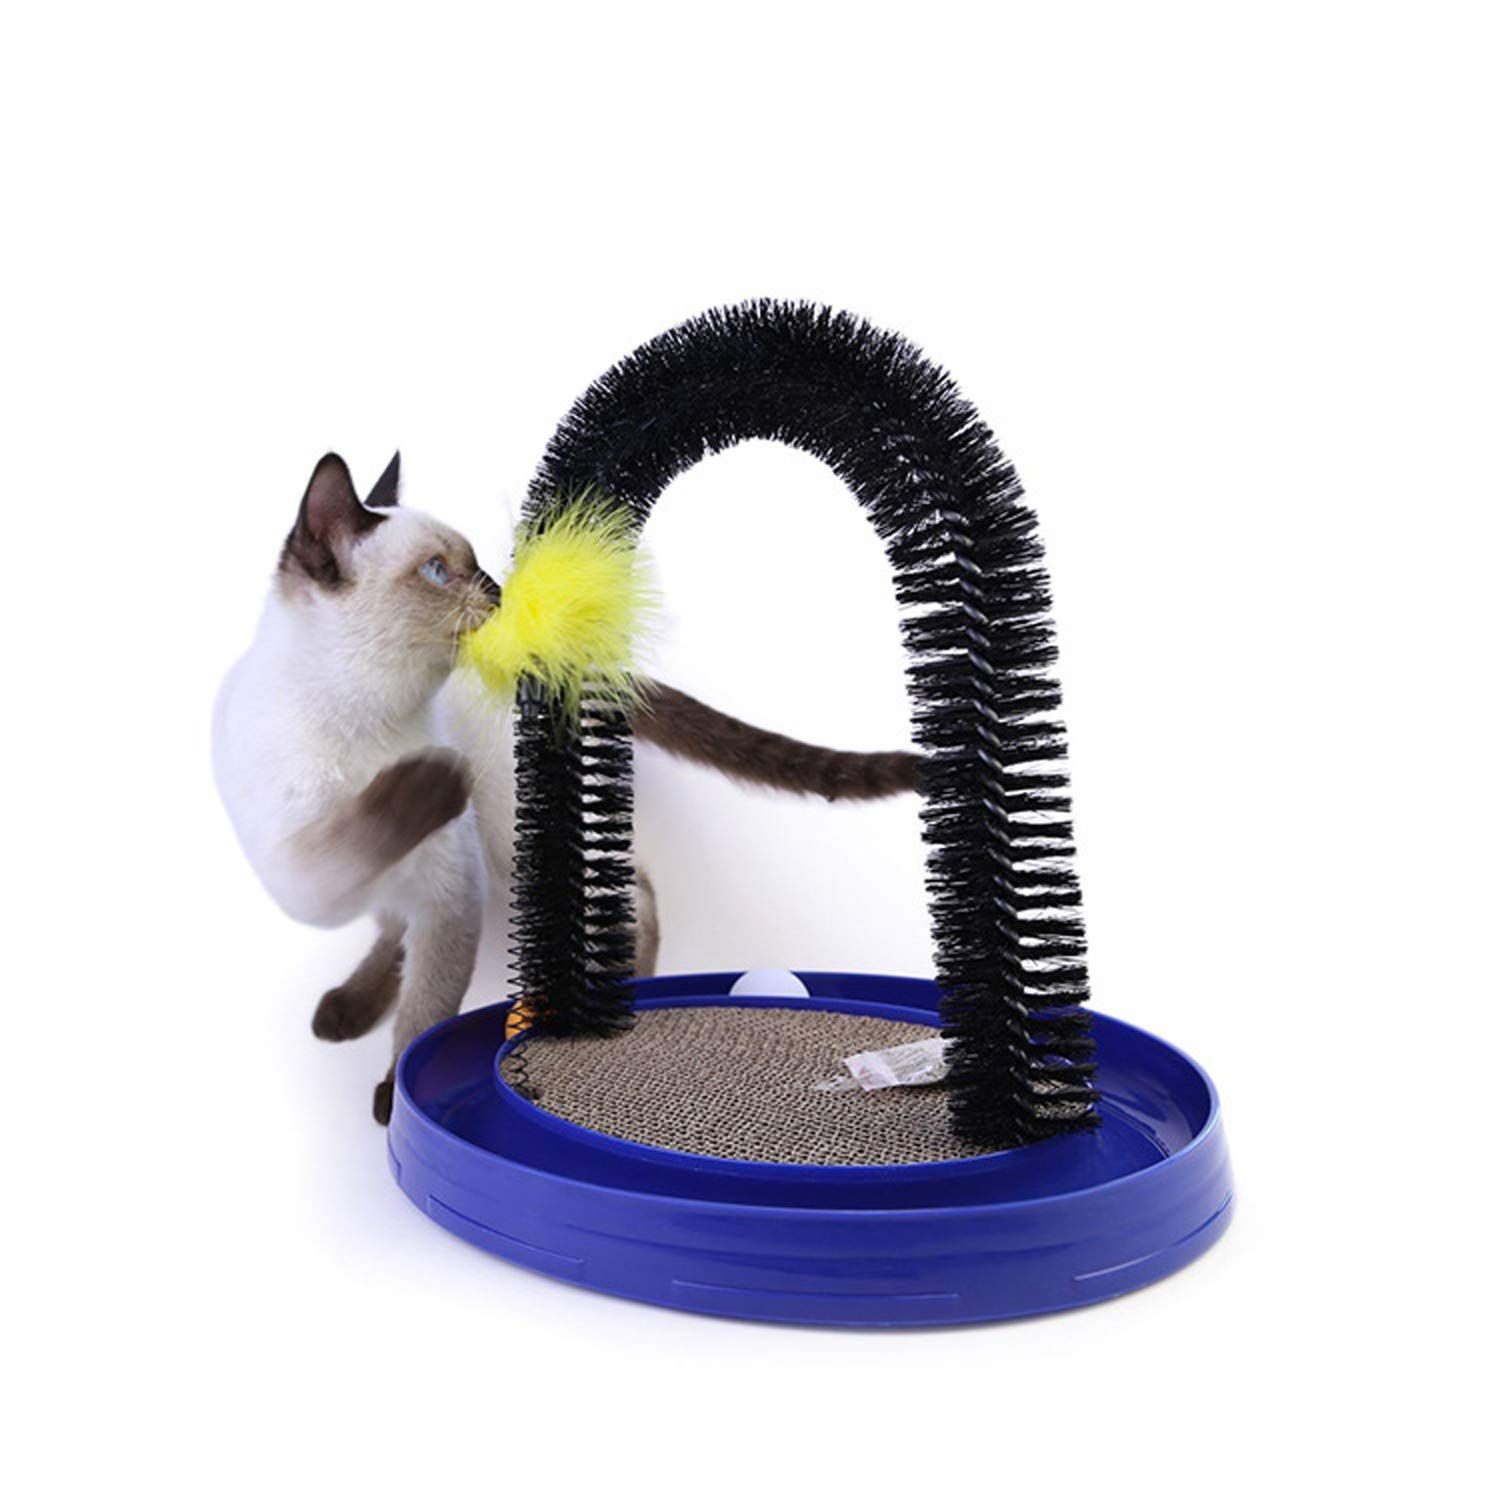 Turbo Scratcher Cat Toy Cat Turbo Toy Durable and